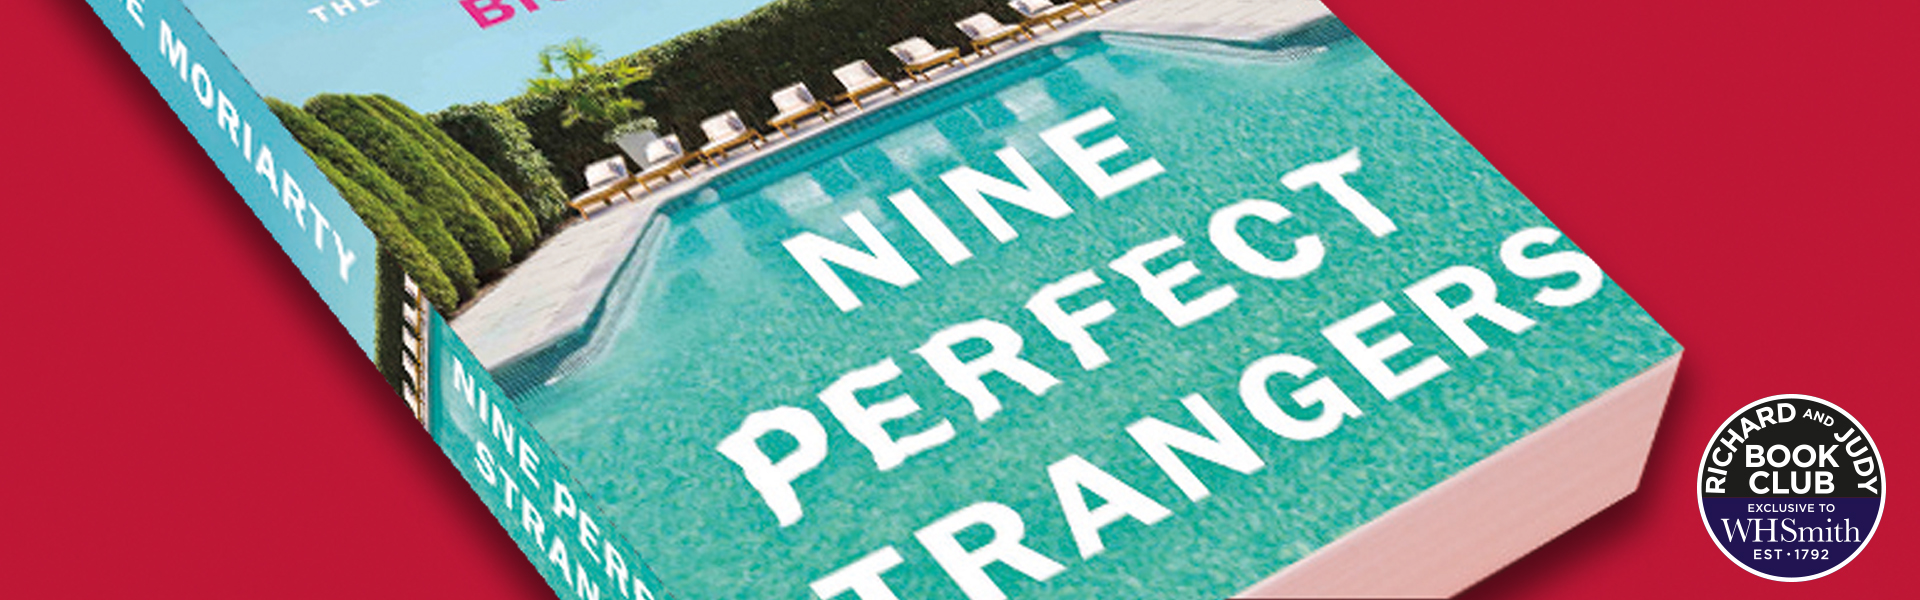 Richard and Judy Introduce Nine Perfect Strangers by Liane Moriarty